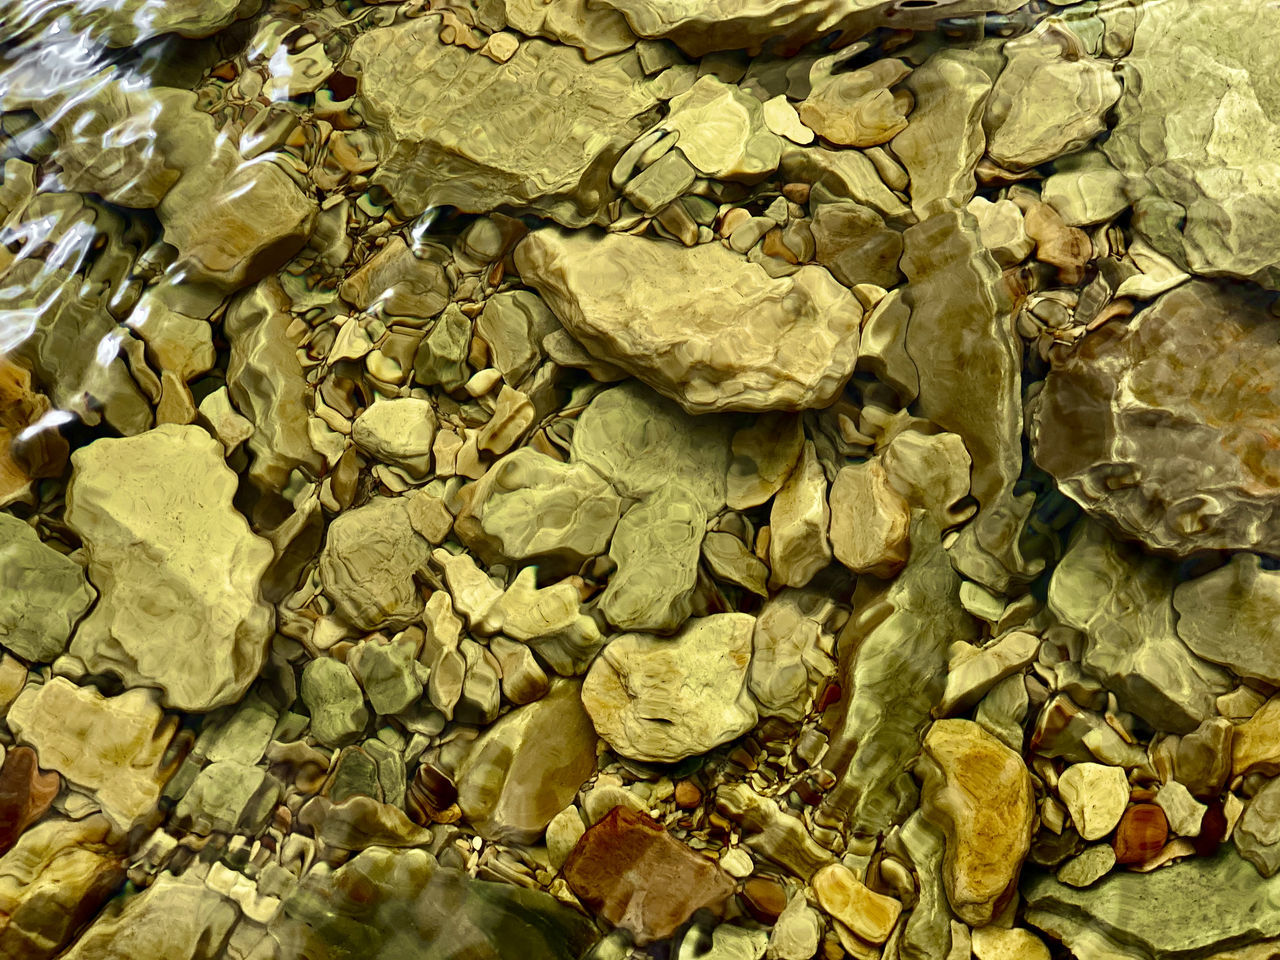 FULL FRAME SHOT OF STONE WALL WITH PEBBLES